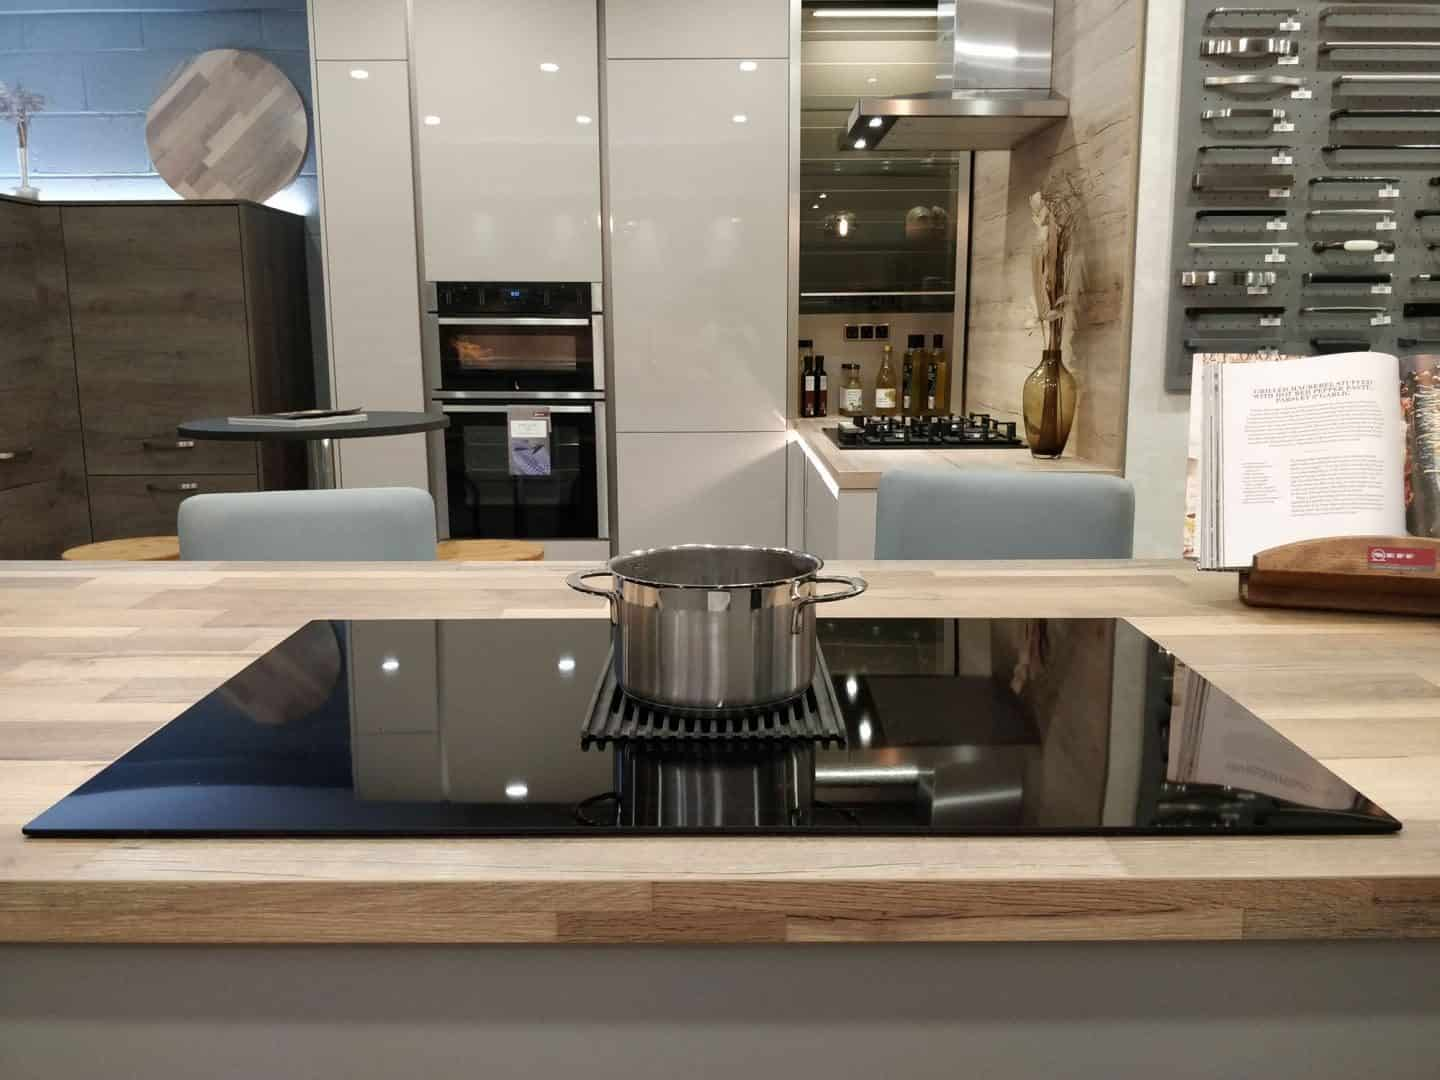 NikolaTesla Prime induction hob from Elica on display in the Kitchen Kit showroom in Truro